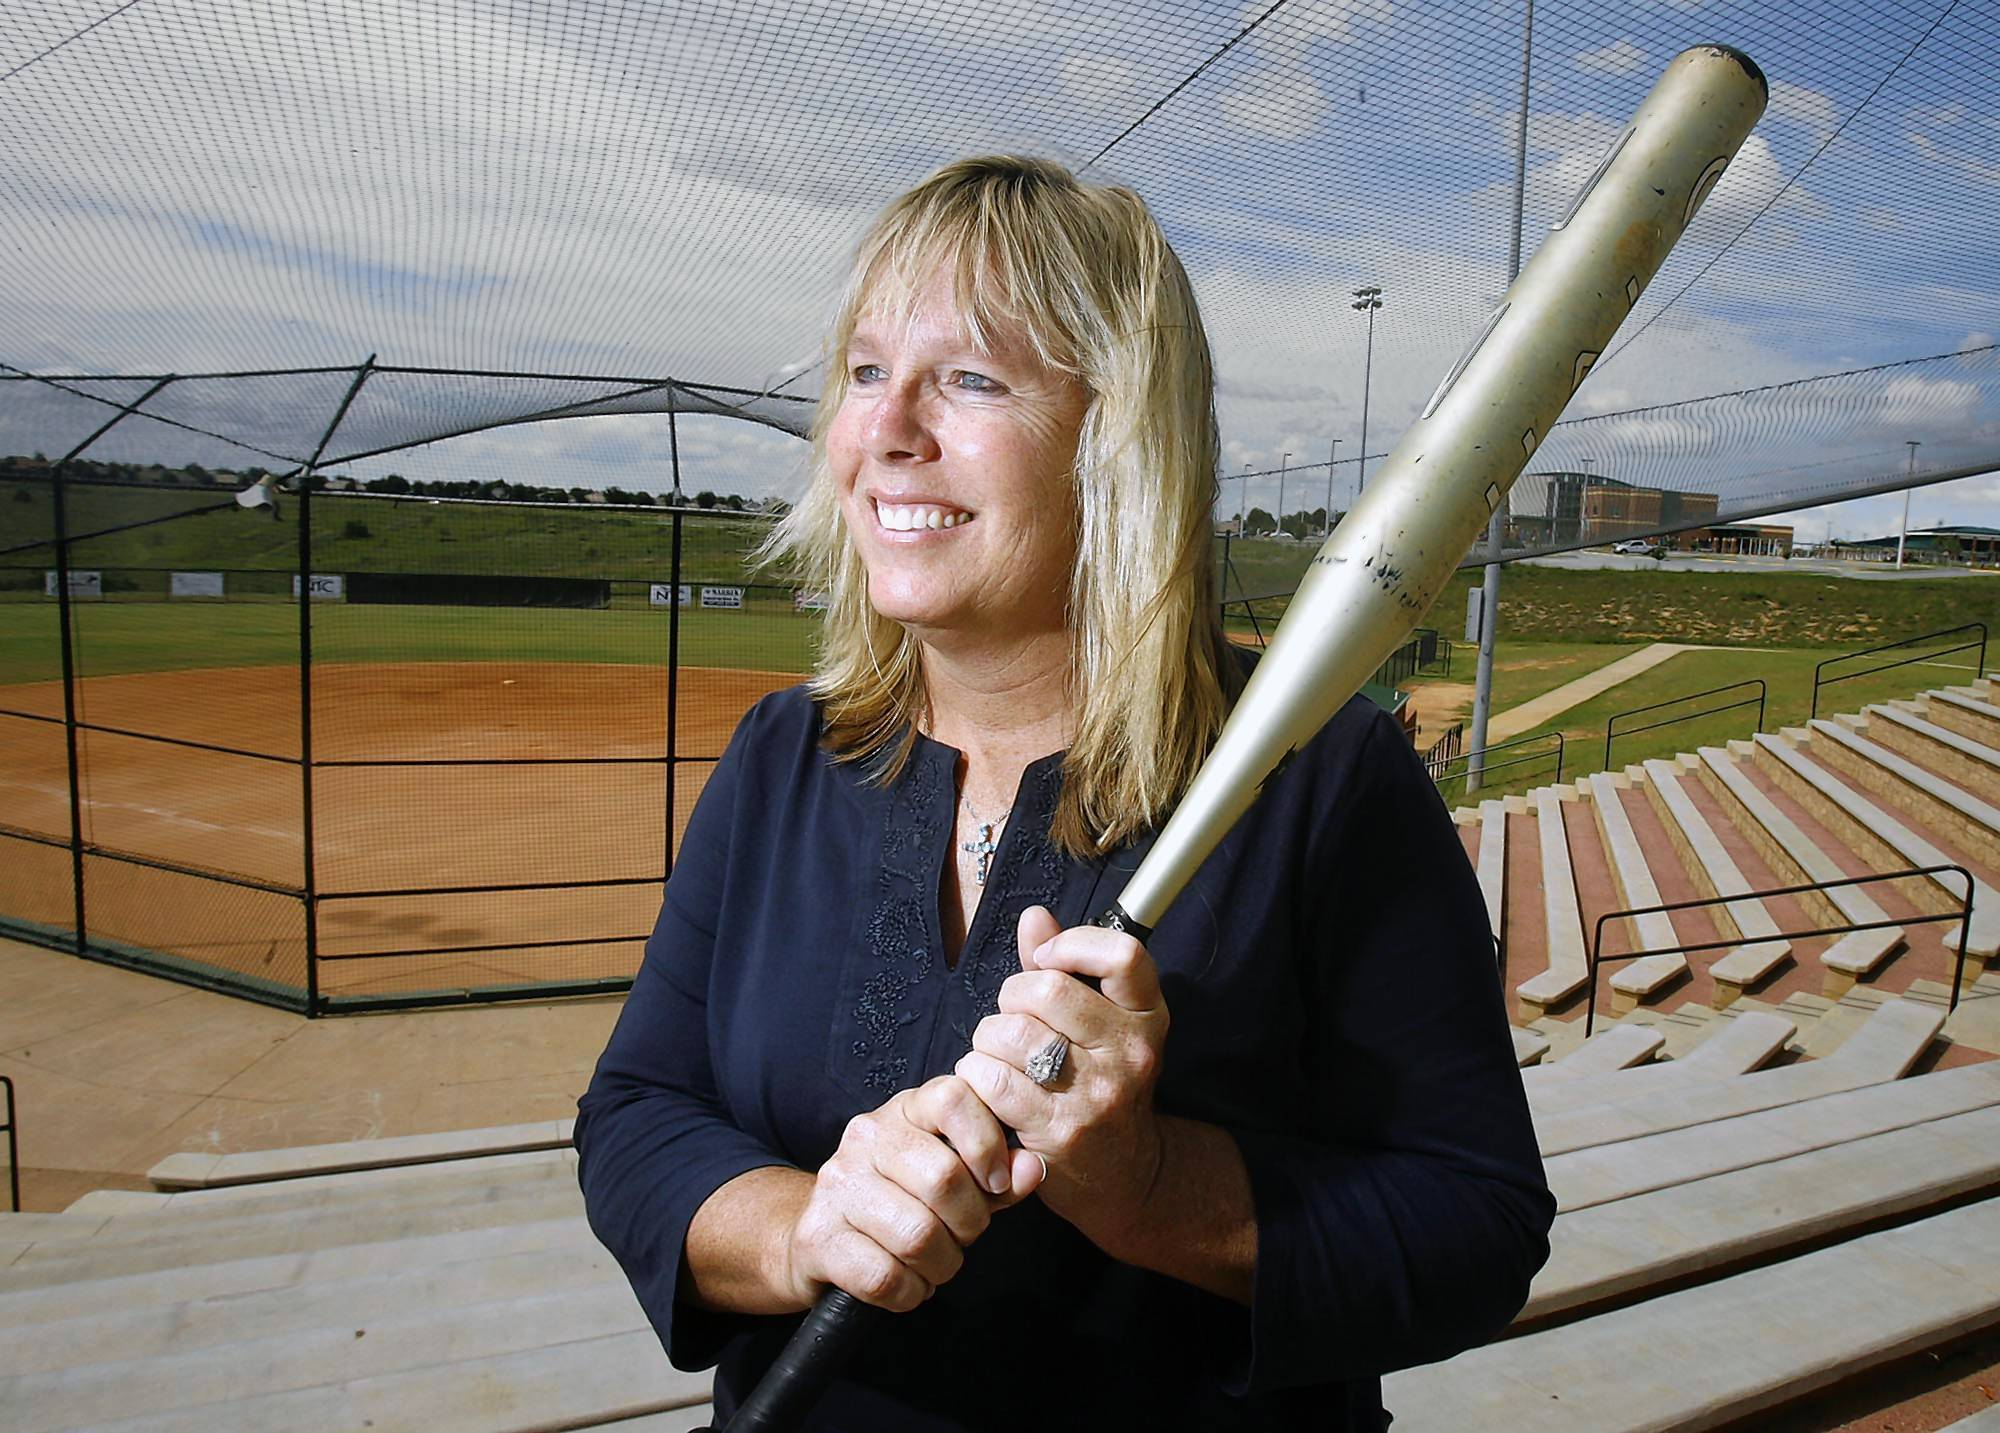 Two-time Olympic gold medalist Dot Richardson is pictured at her softball facility at the National Training Center in Clermont on Tuesday, June 19, 2012. (Stephen M. Dowell/Orlando Sentinel)